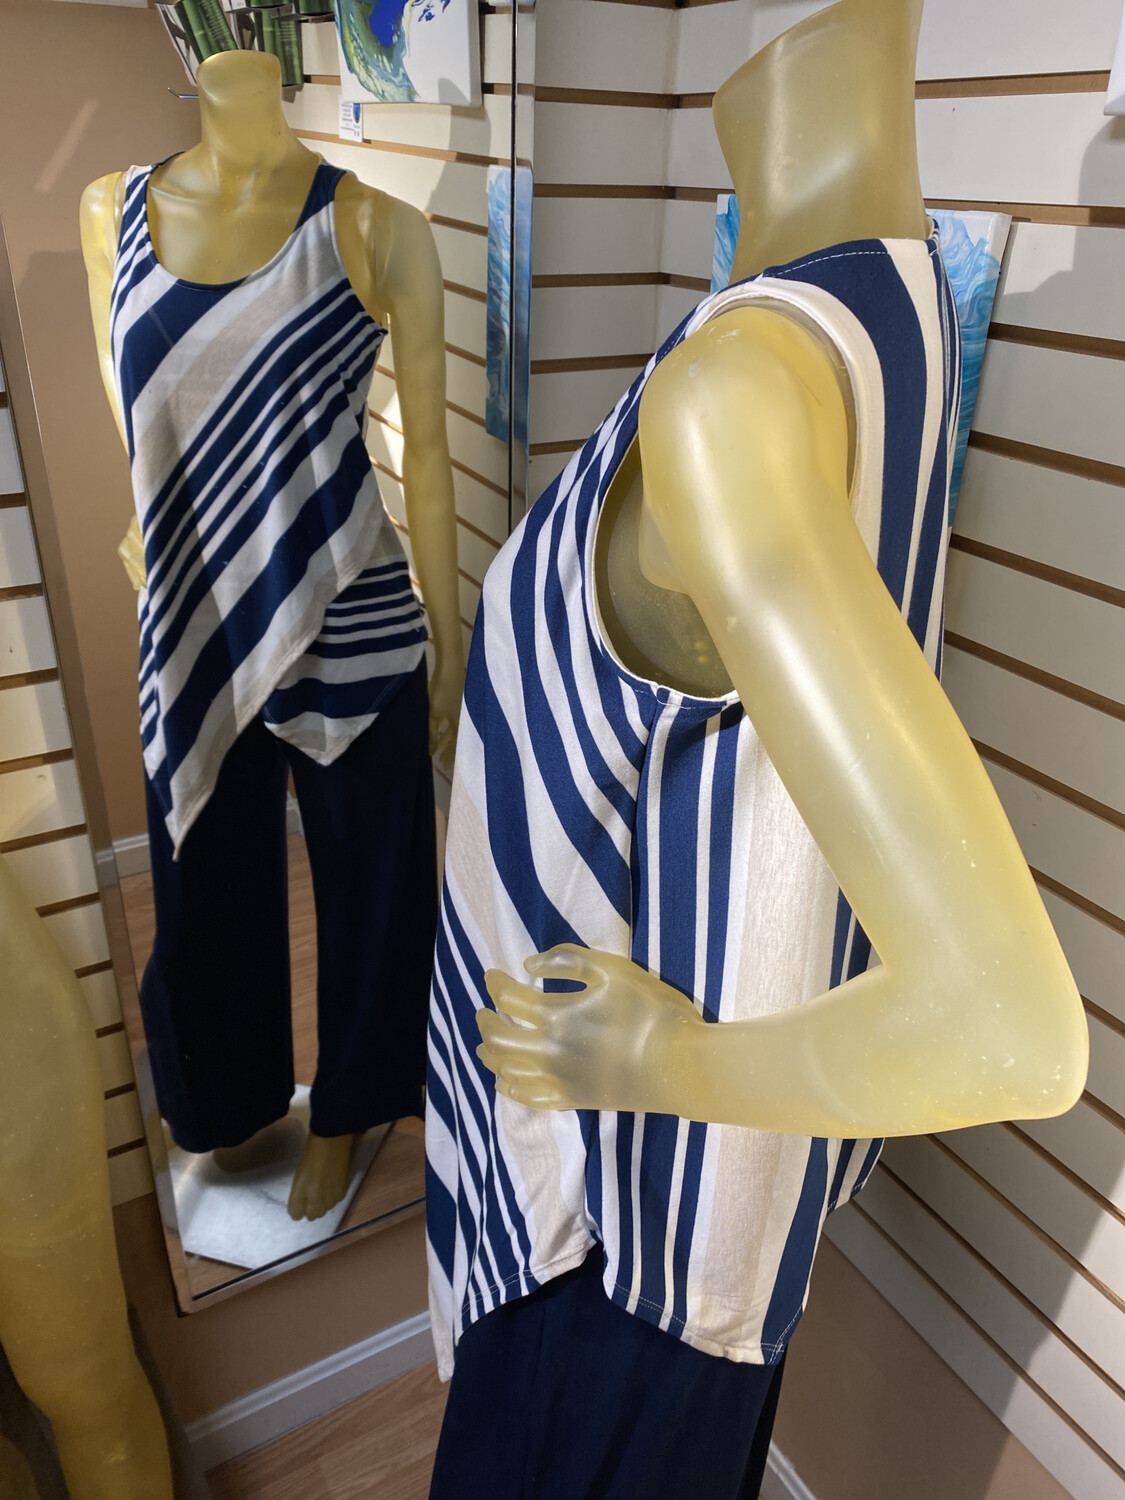 Major Deal Inside Out Modal Striped Sleeveless Top Made In USA Only 1 S Fits Like 4/6